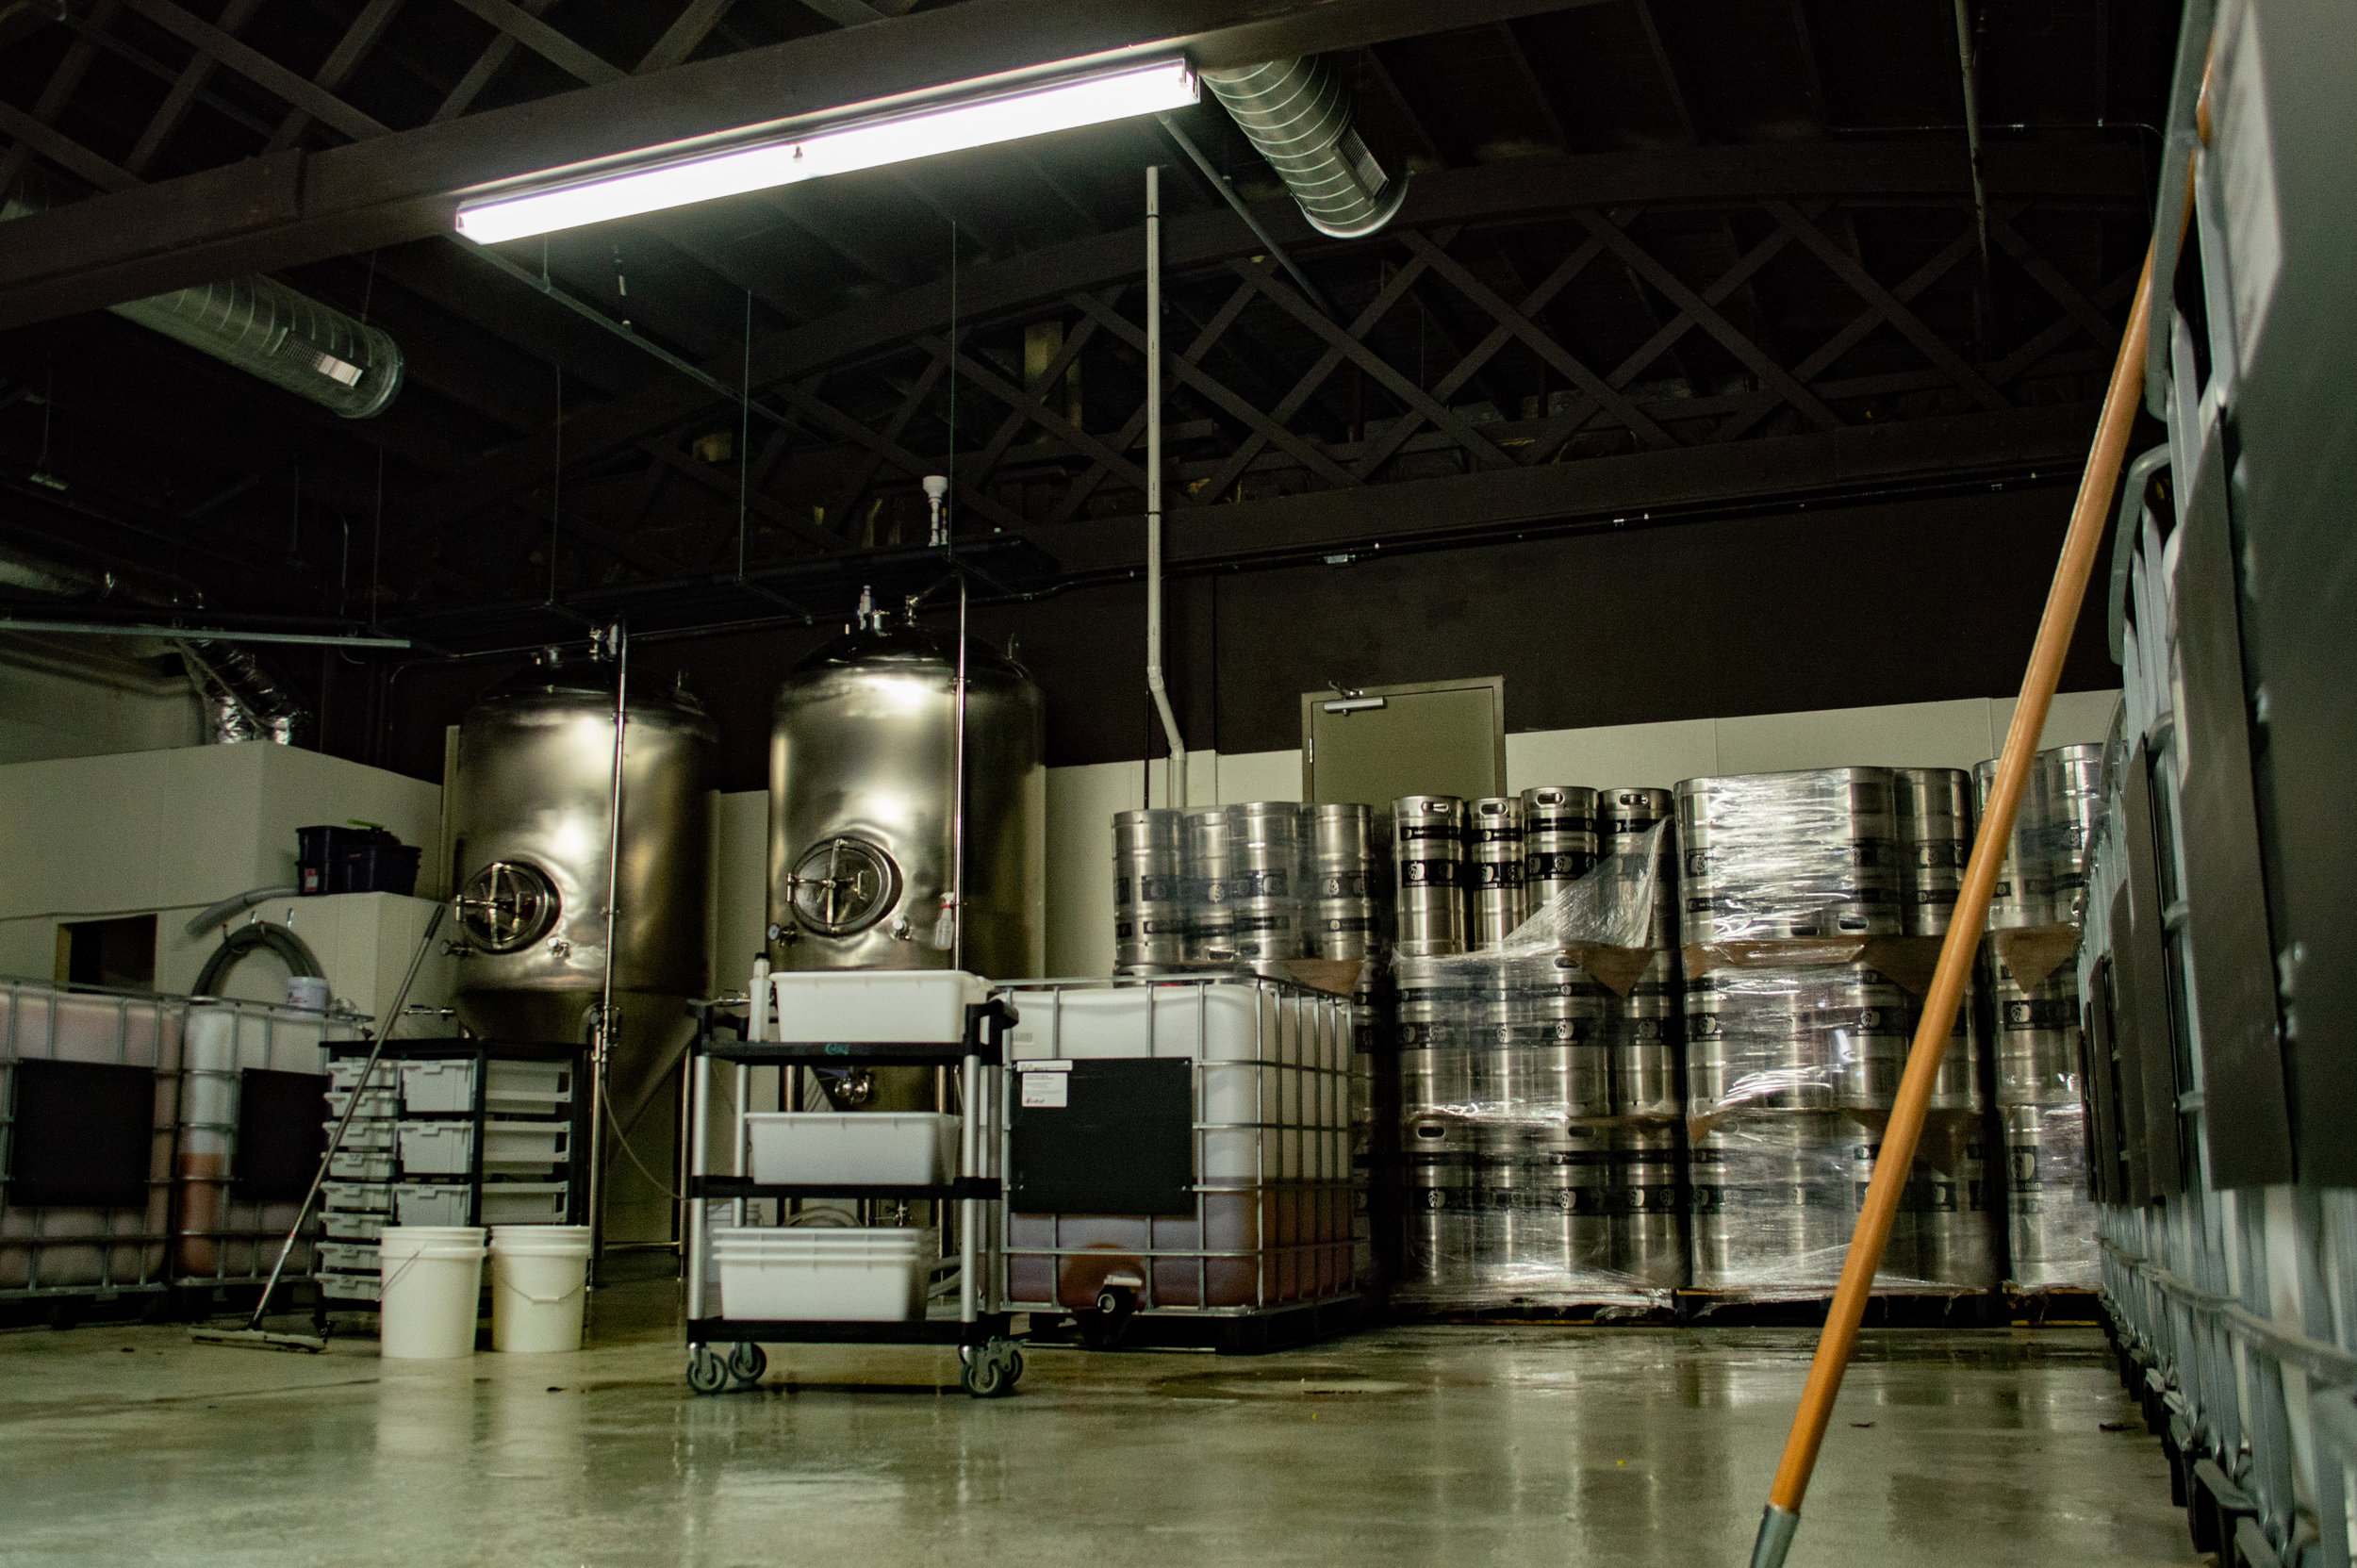 The production section where the cider will be brewed. Photo by: Jake Barnard